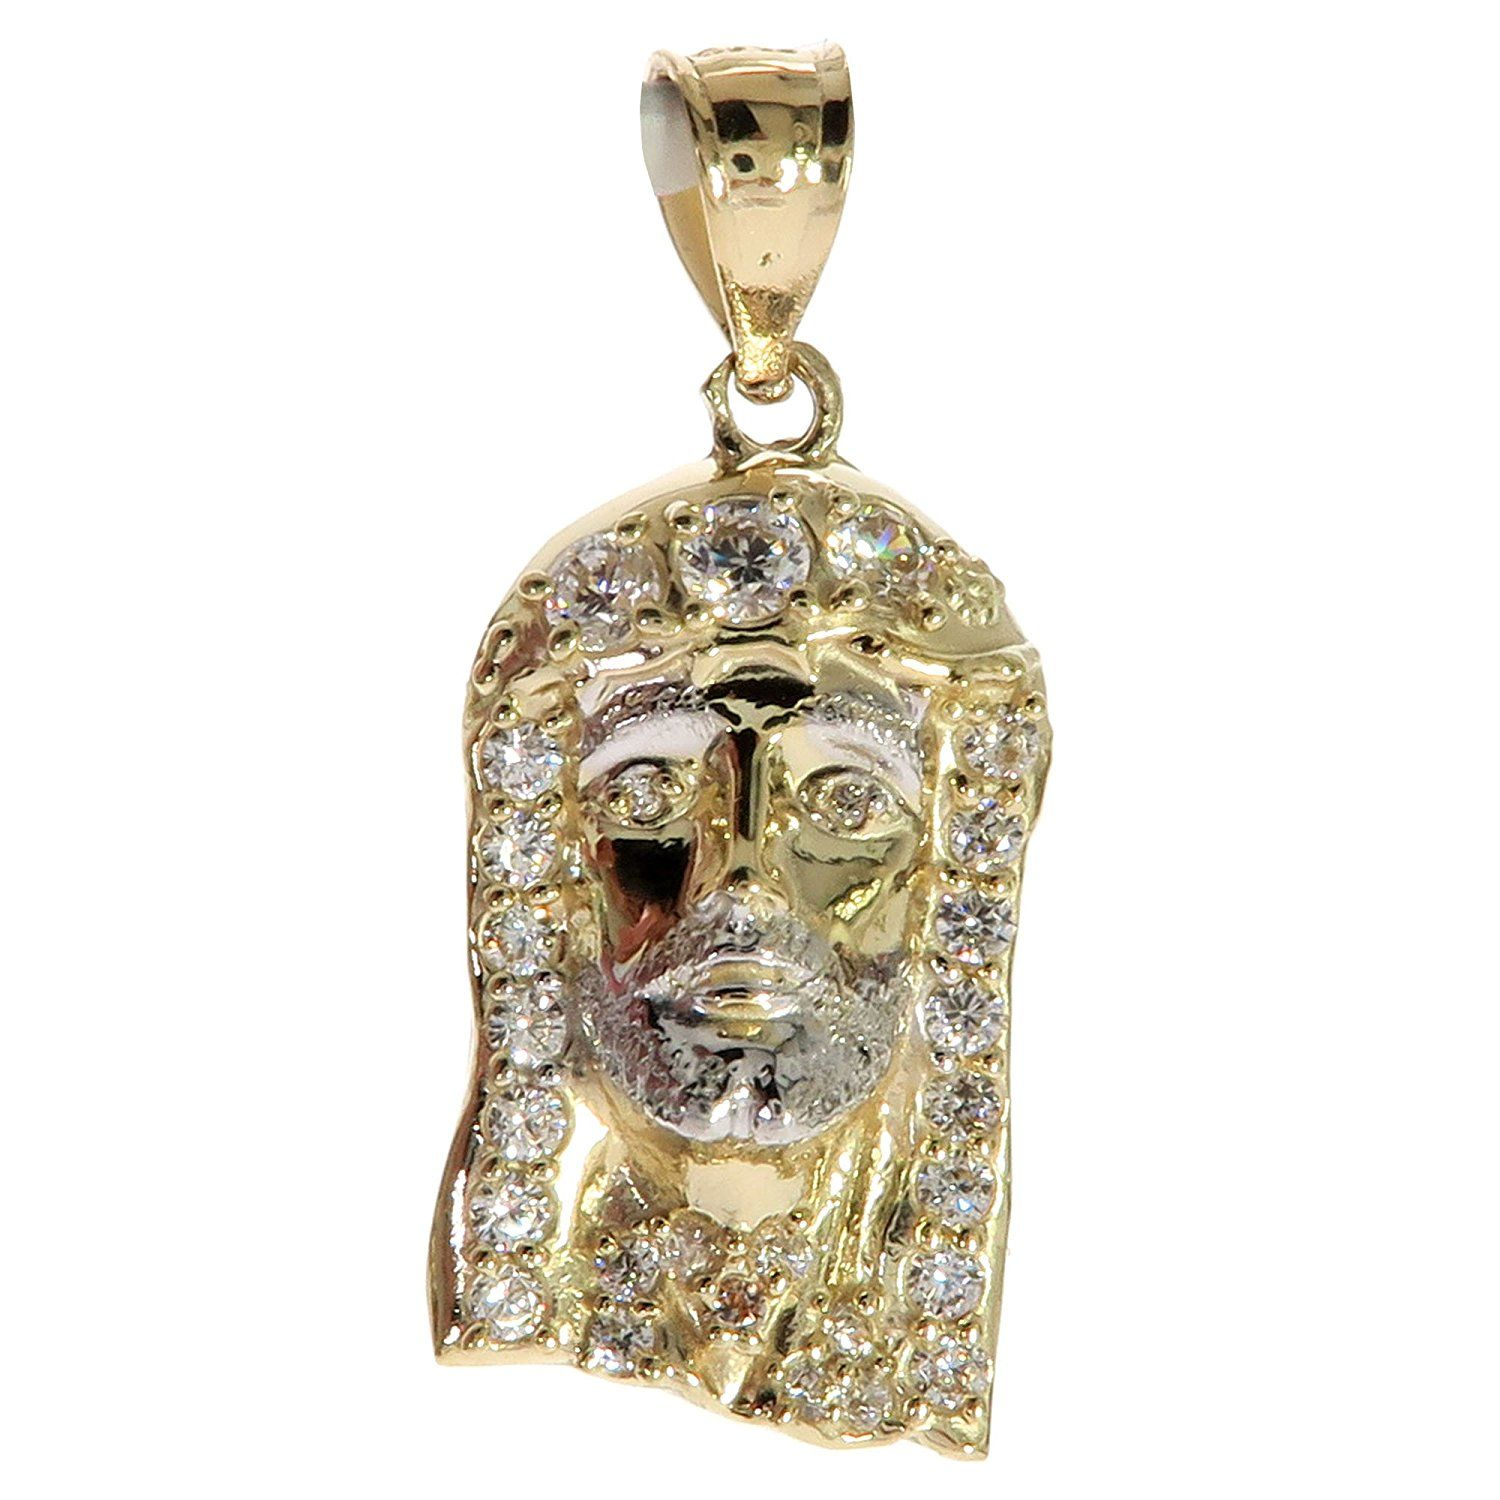 Cz genuine stamped authentic k yellow gold charm pendant hip hop